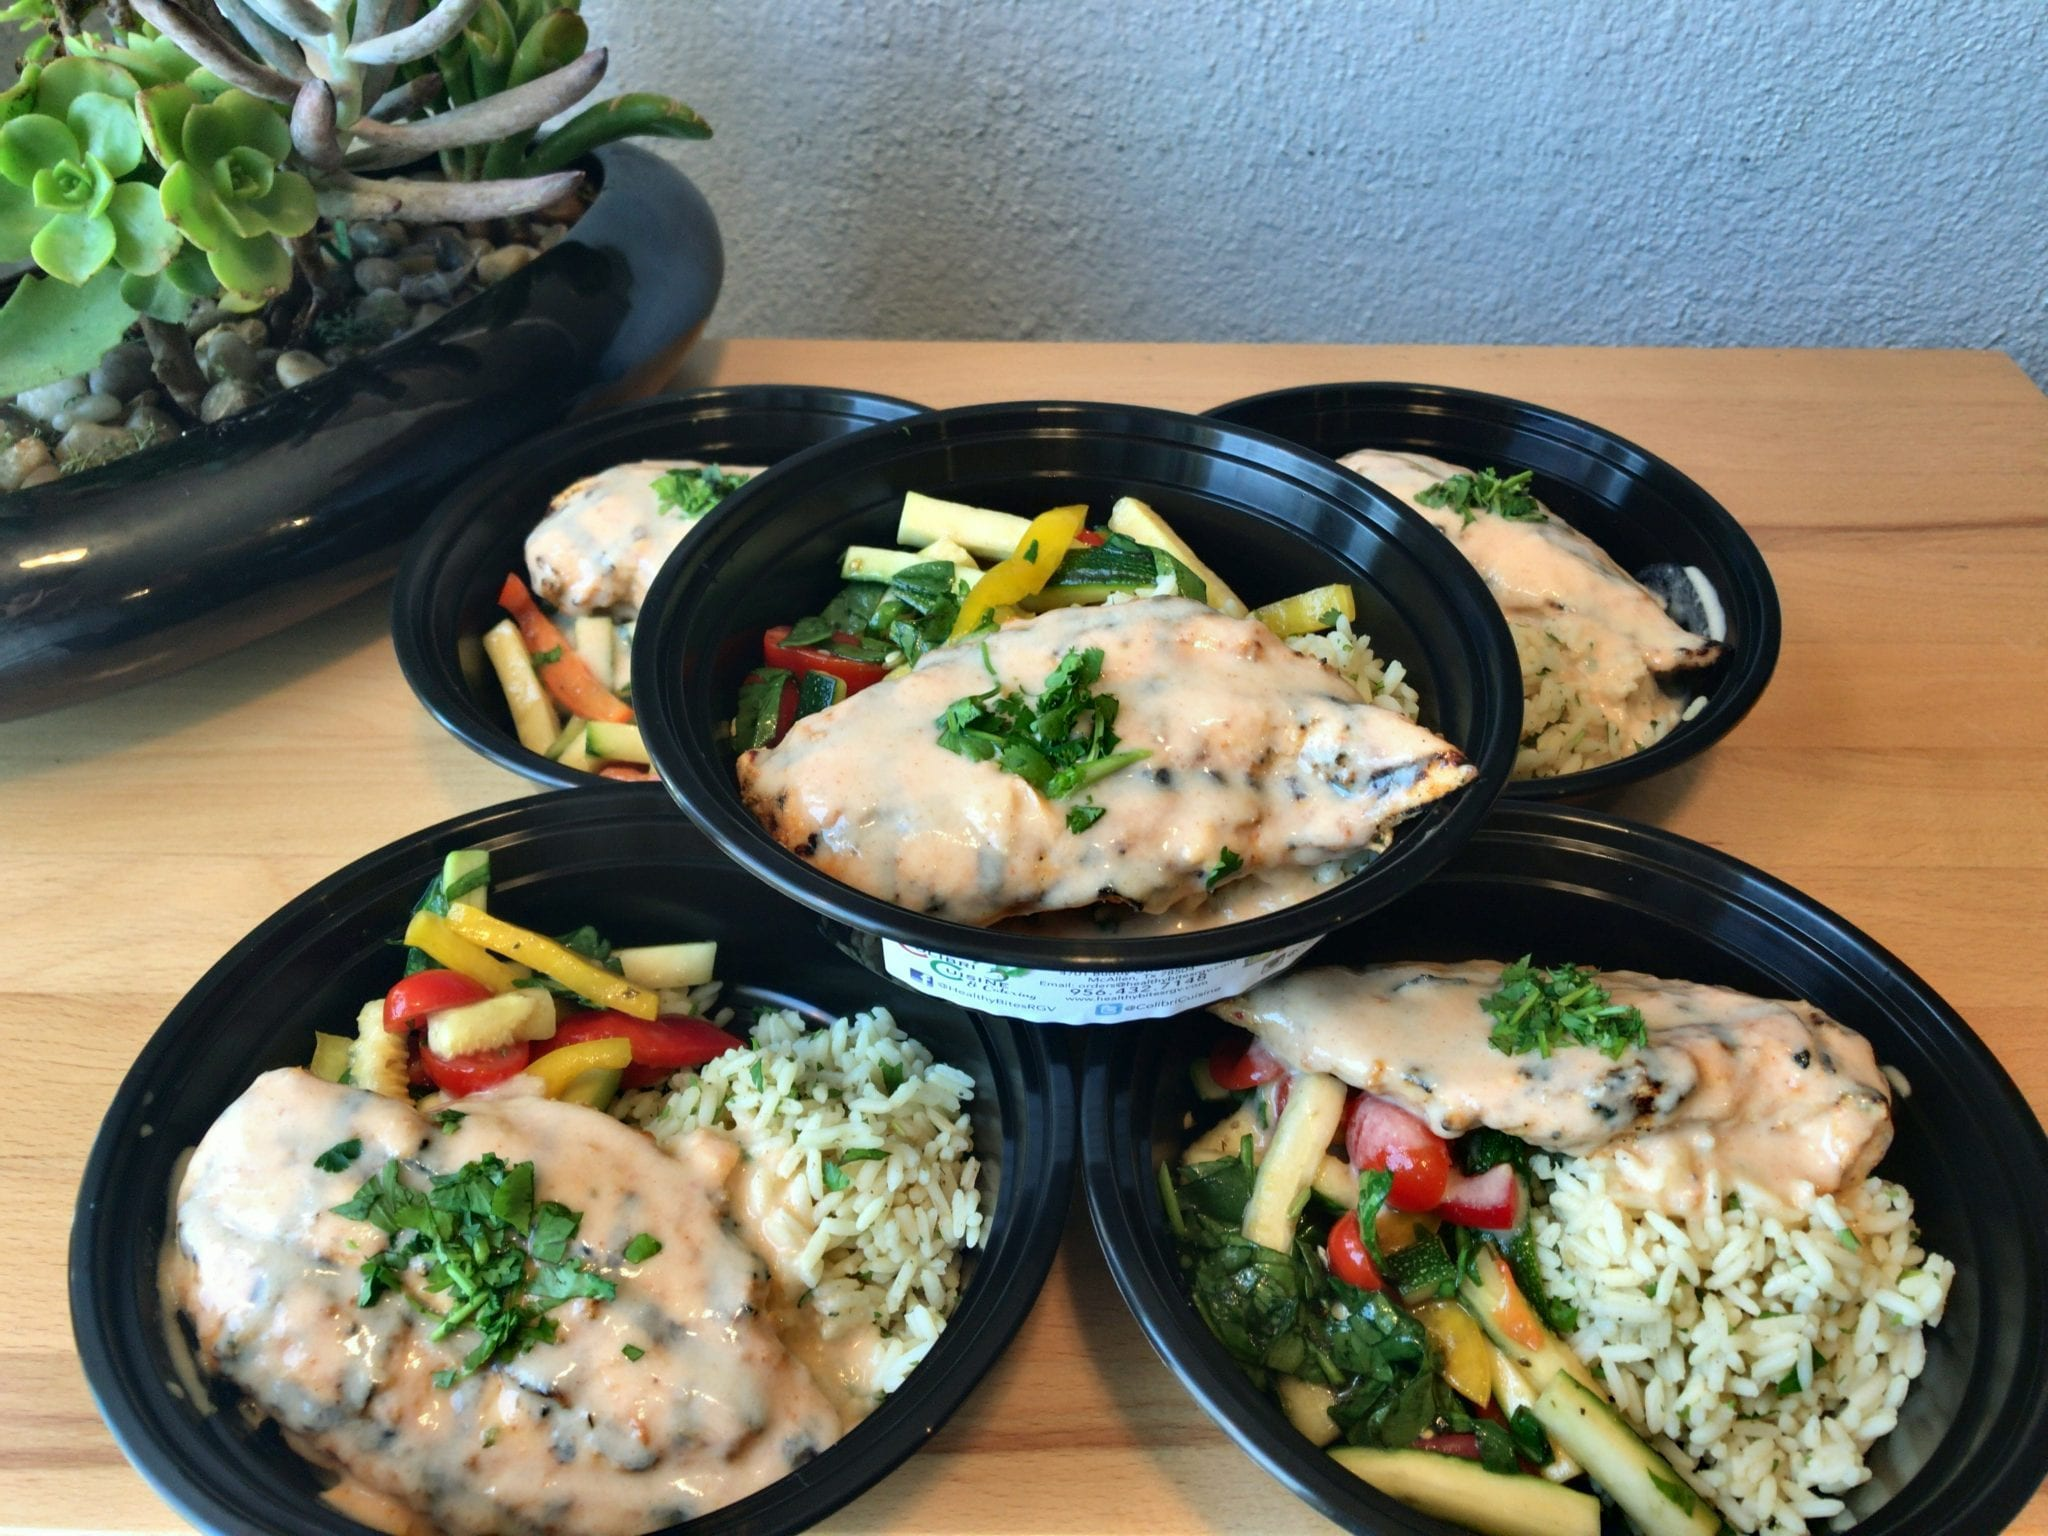 Healthy Bites by Colibri Cuisine - Custom Meal Planning